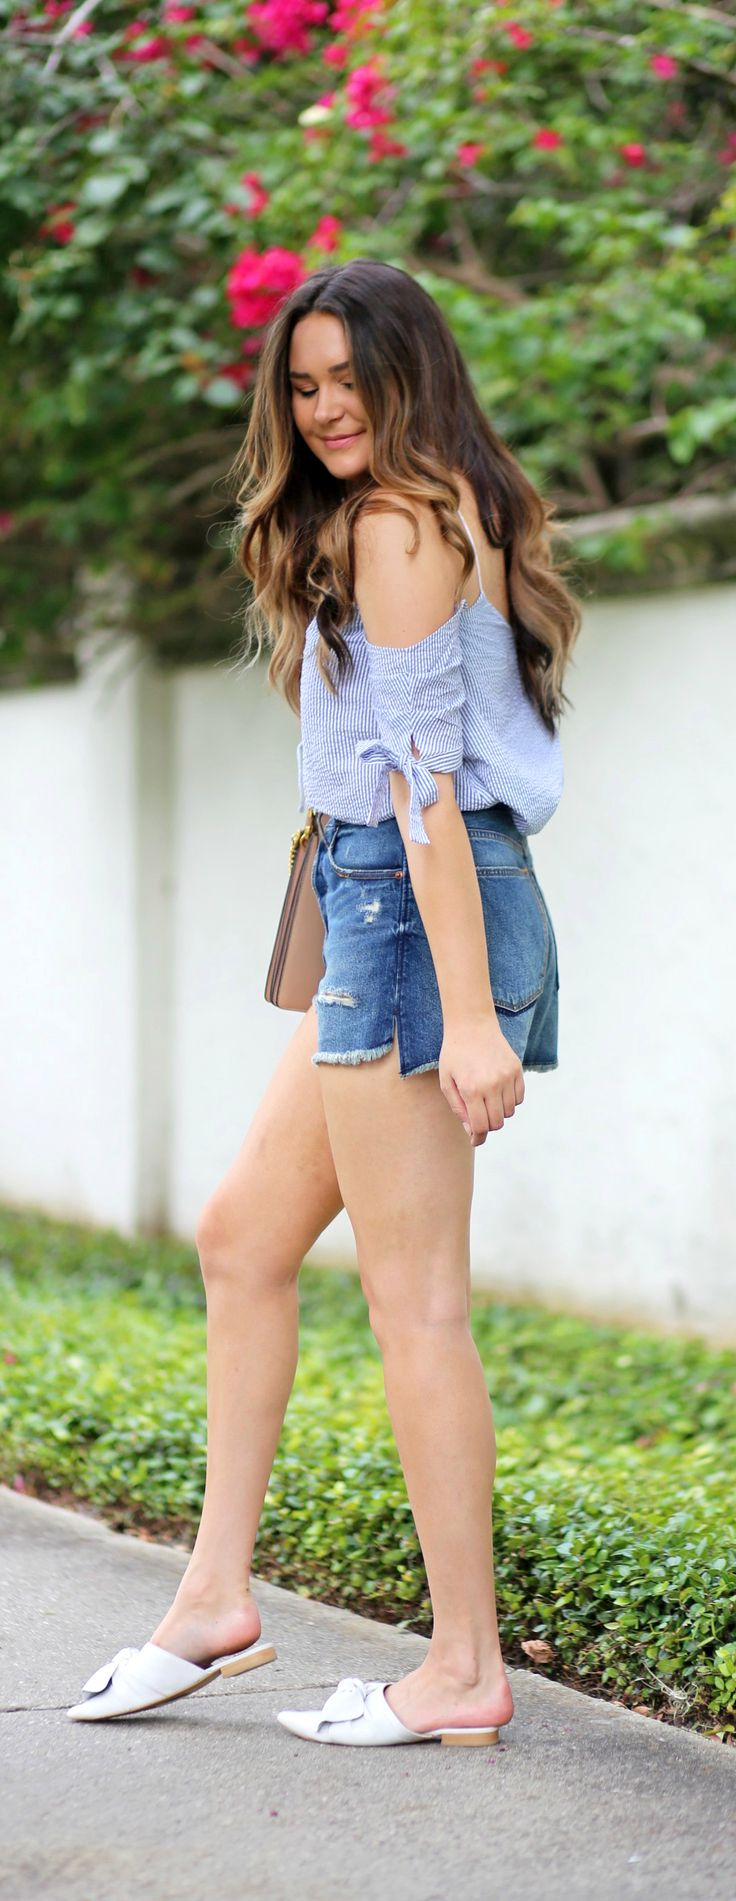 Need this entire outfit! | Fashion blogger Mash Elle styles a blue striped seersucker off the shoulder top from Urban Outfitters  with high waisted cut off ripped jeans short from Abercrombie and Fitch shorts, Michael Hill watch, and Chloe Faye purse.